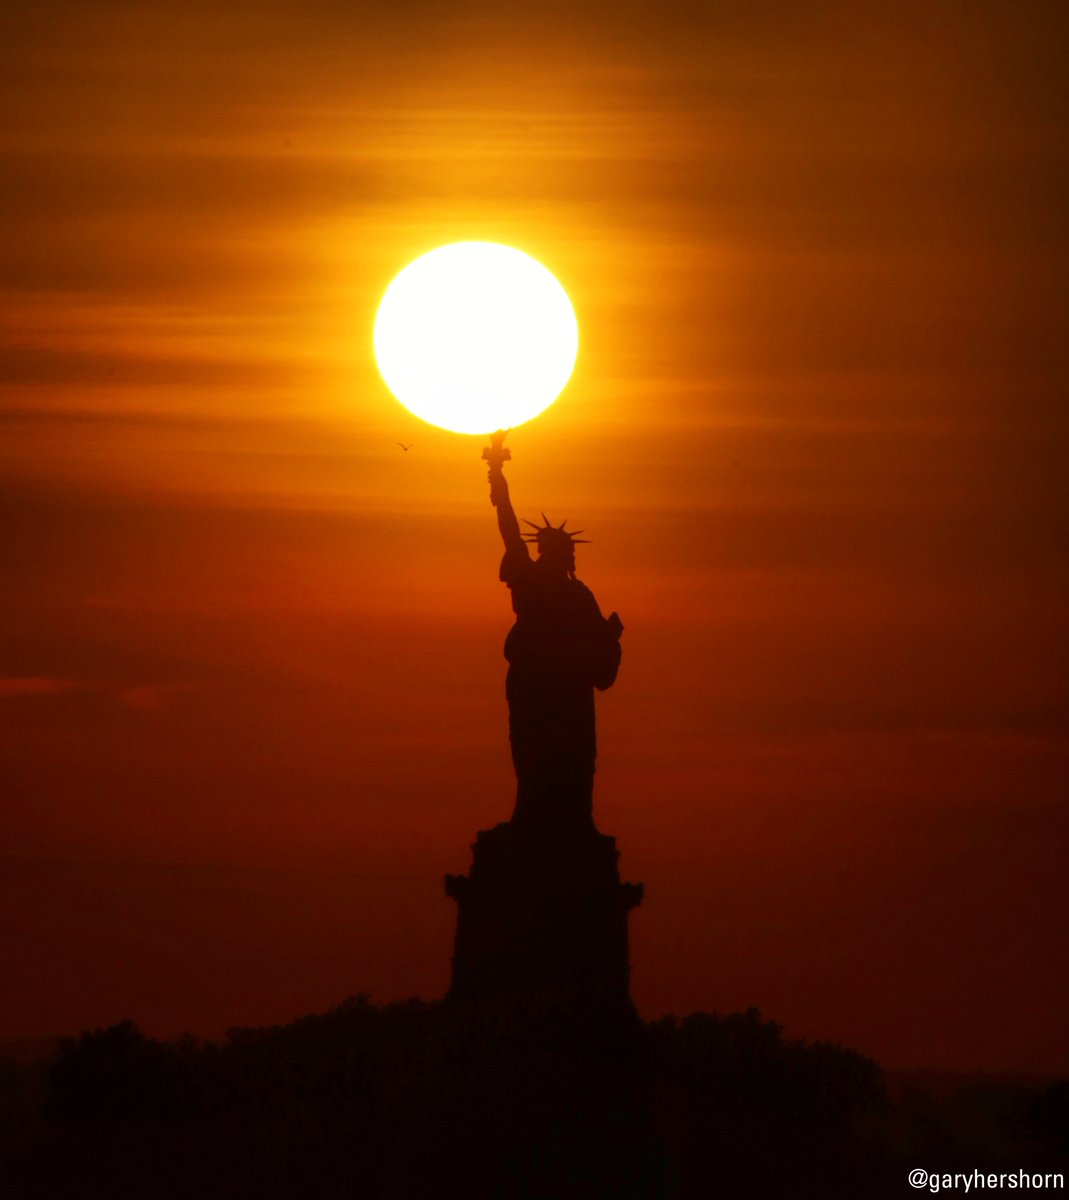 On this day in 1885, the Statue of Liberty, seen here tonight during sunset, arrived in the New York Harbor after being shipped across the Atlantic Ocean in 350 individual pieces. Lady Liberty was sent to the United States as a gift of friendship from France.